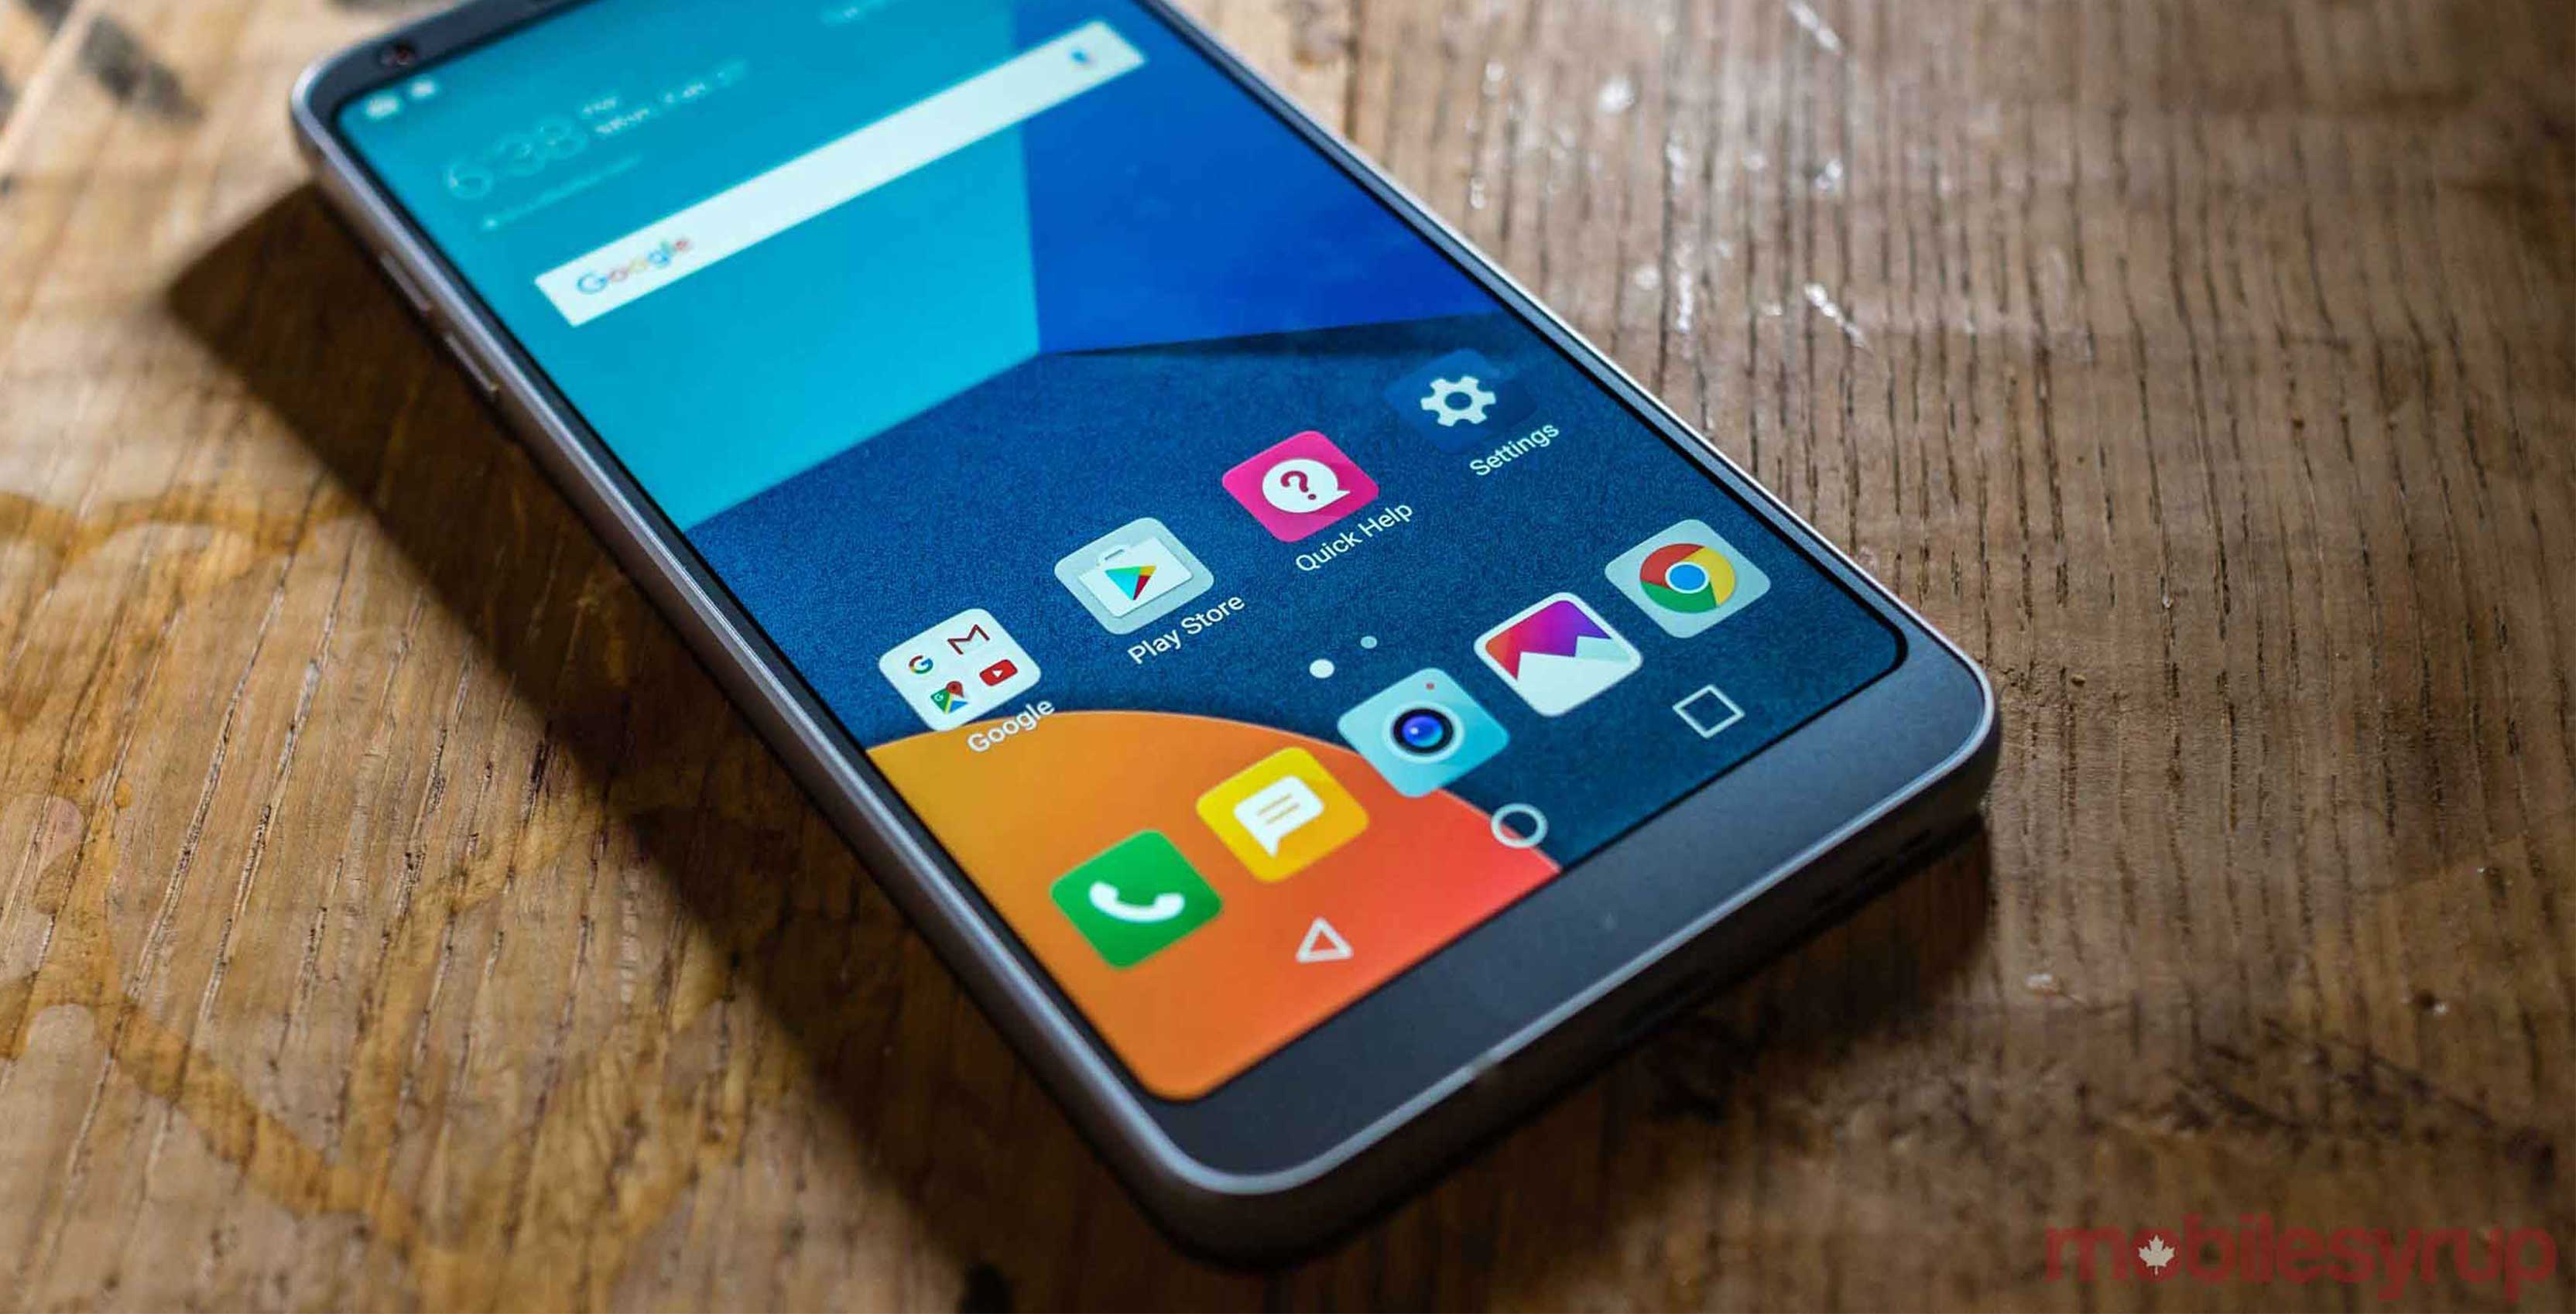 lg g6 on table